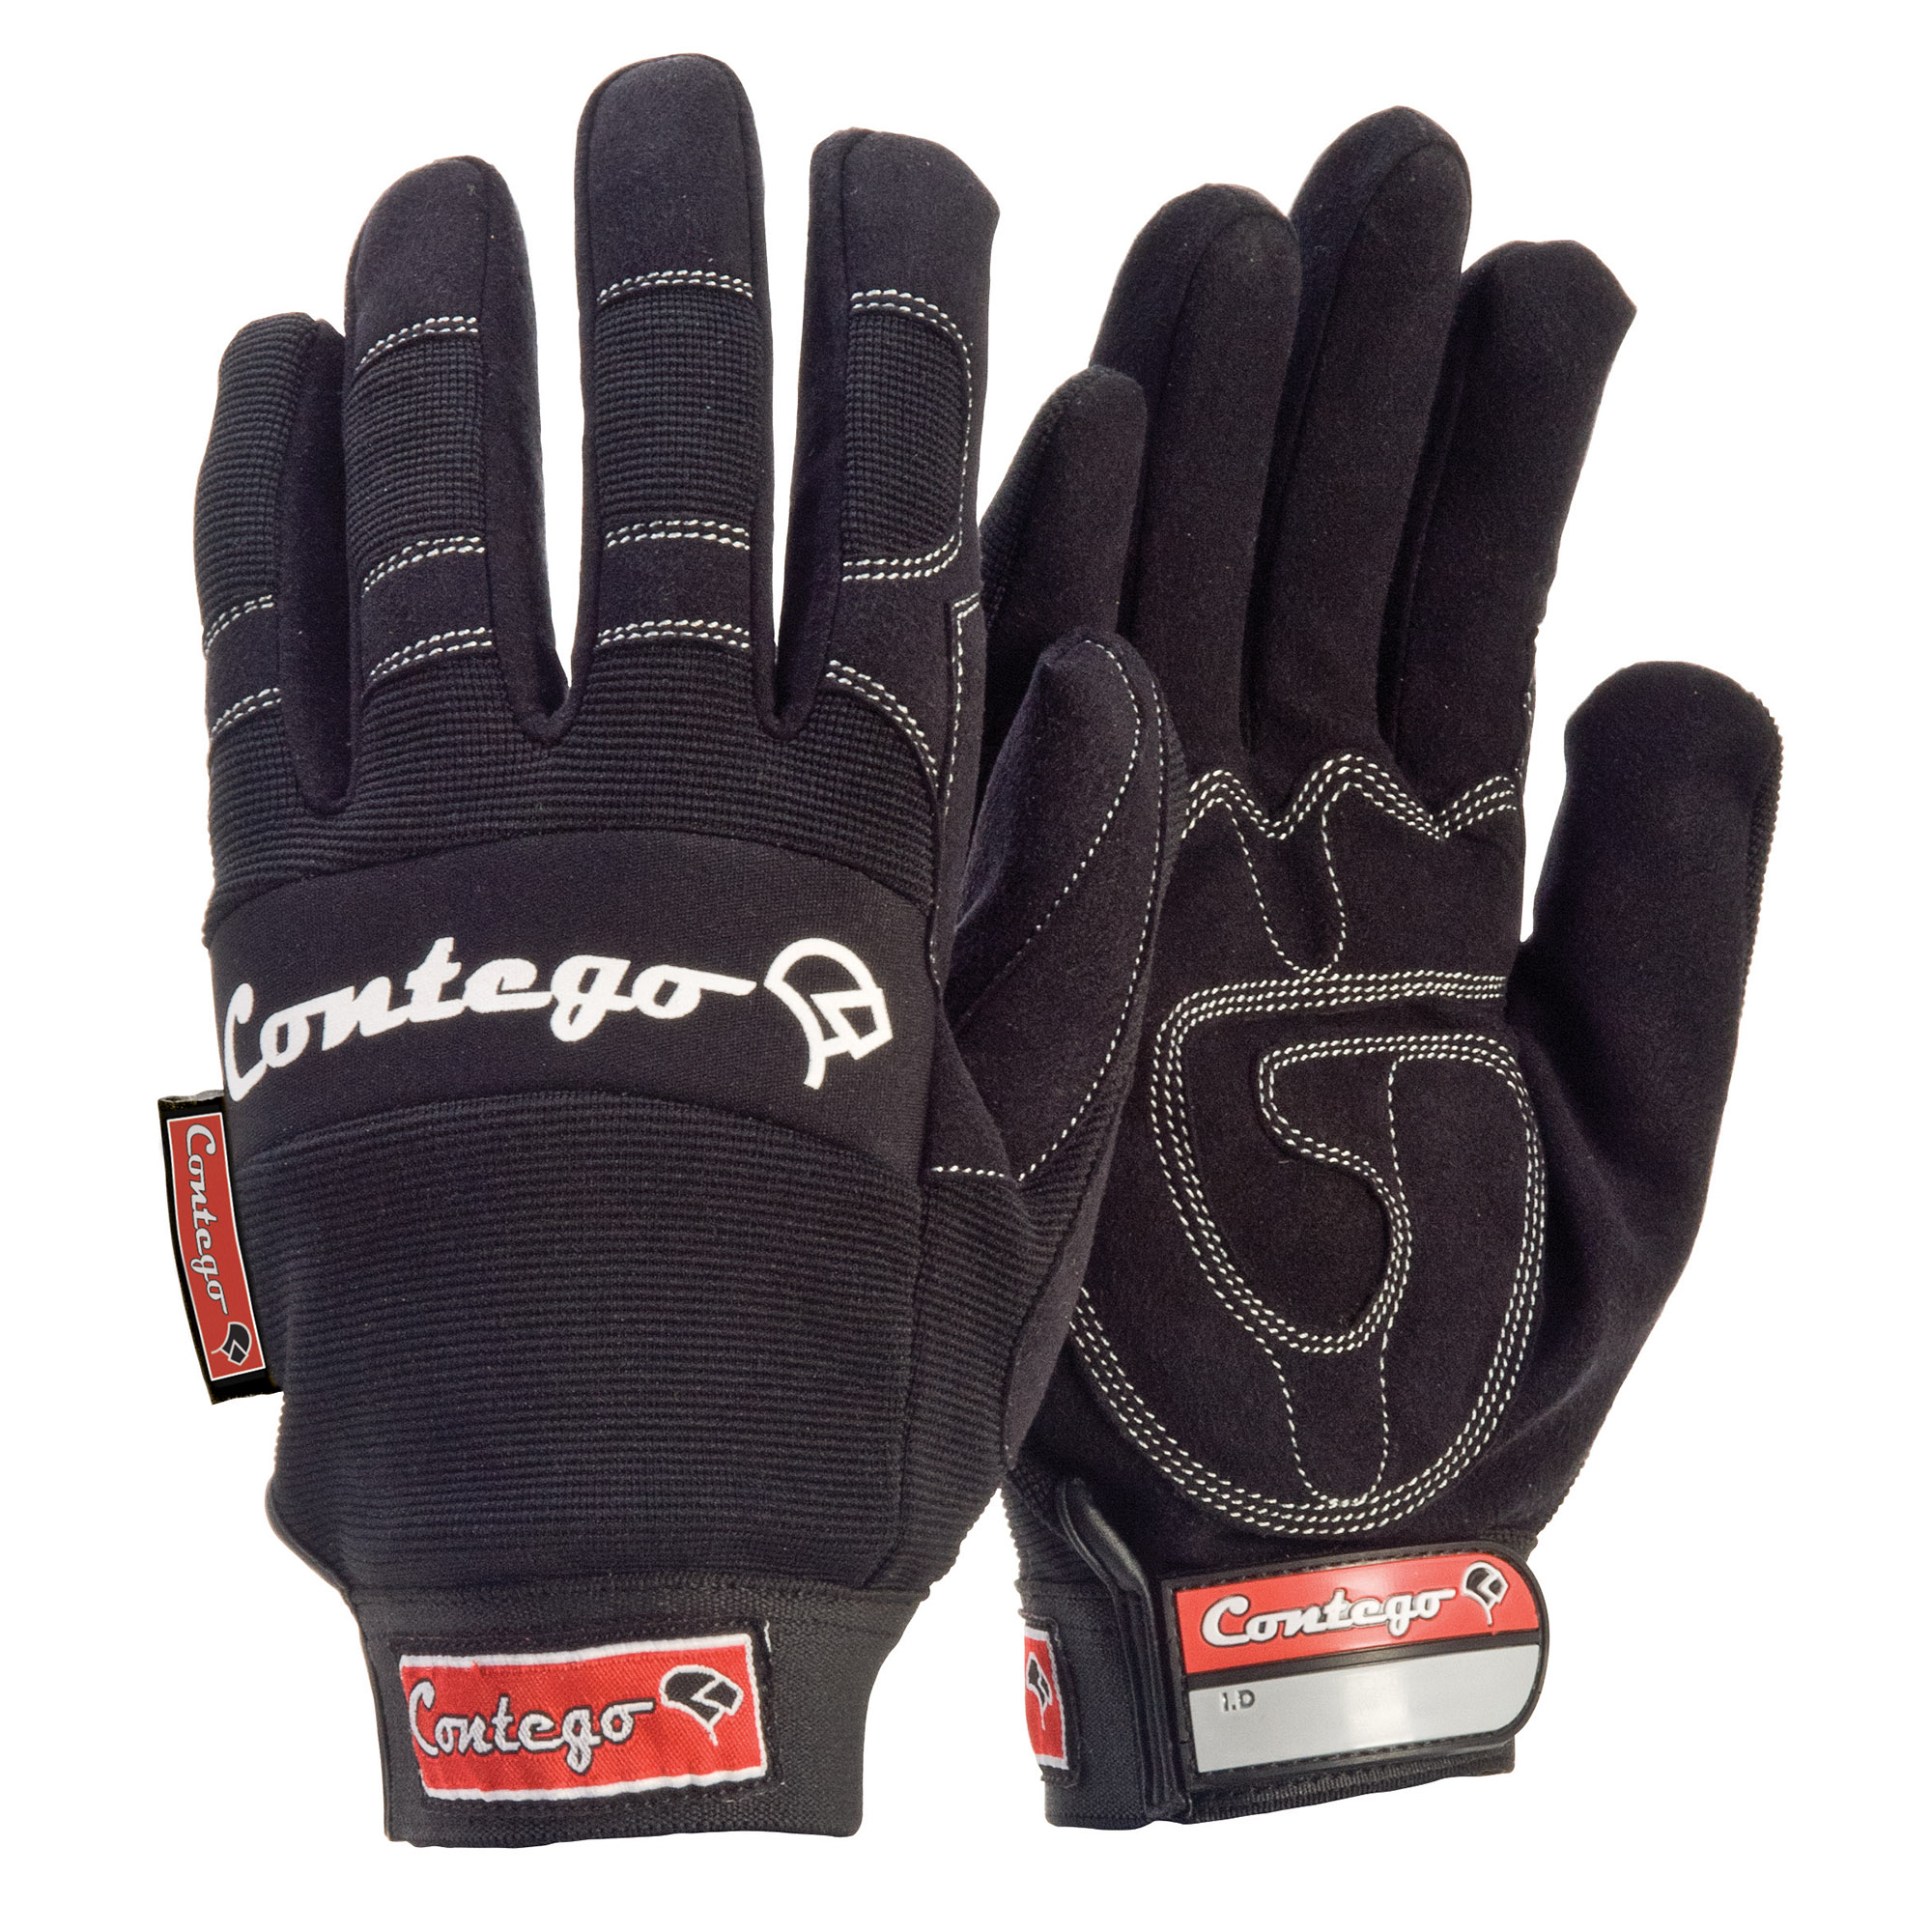 Contego Gloves